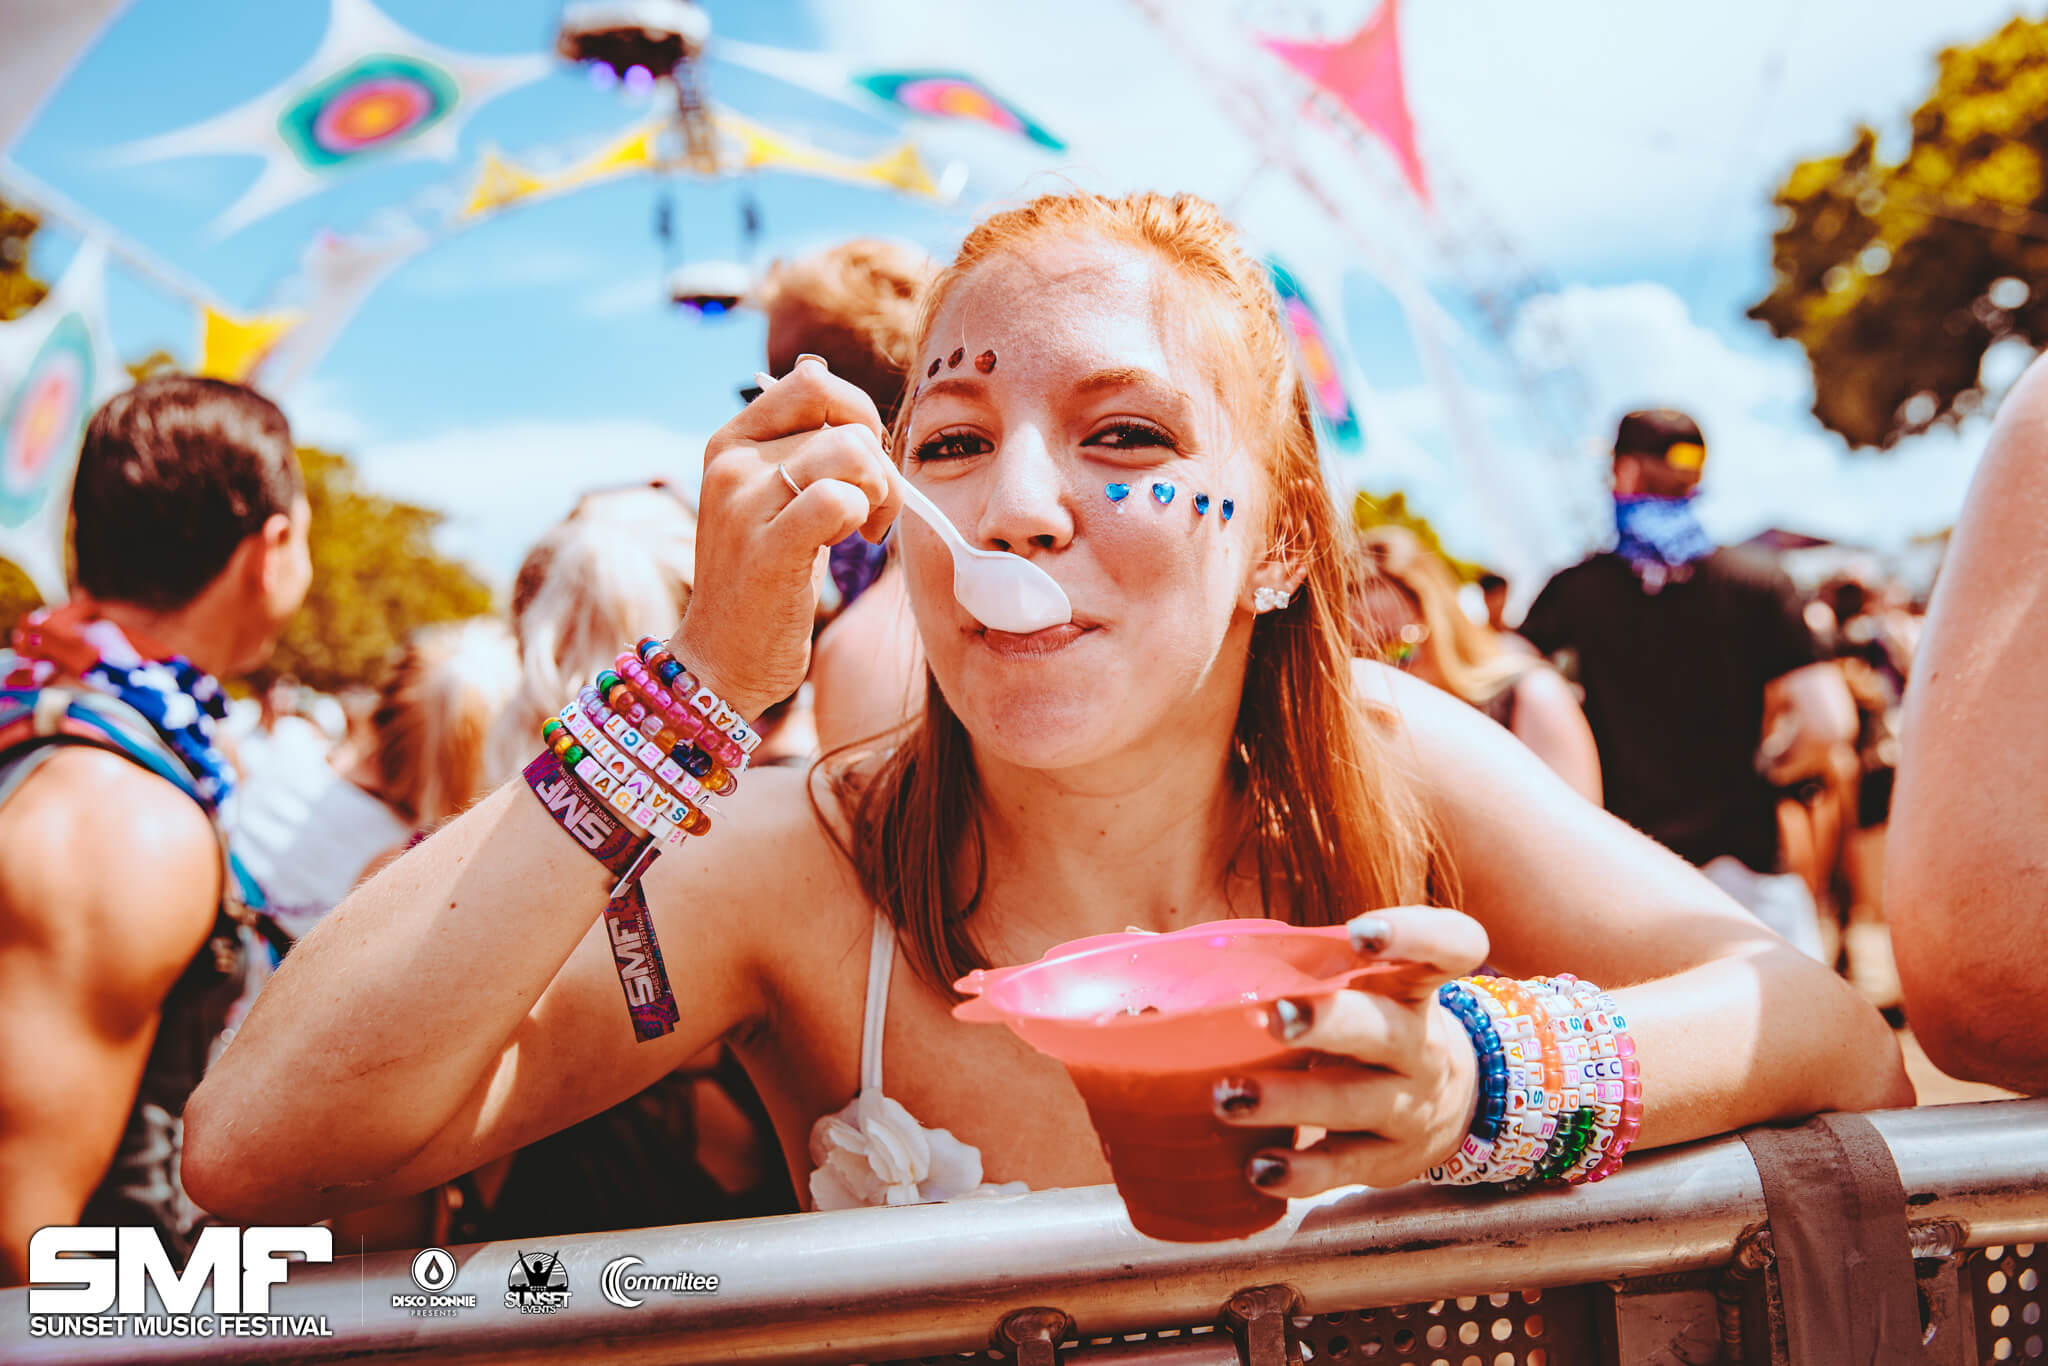 front row fan munching at sunset music festival